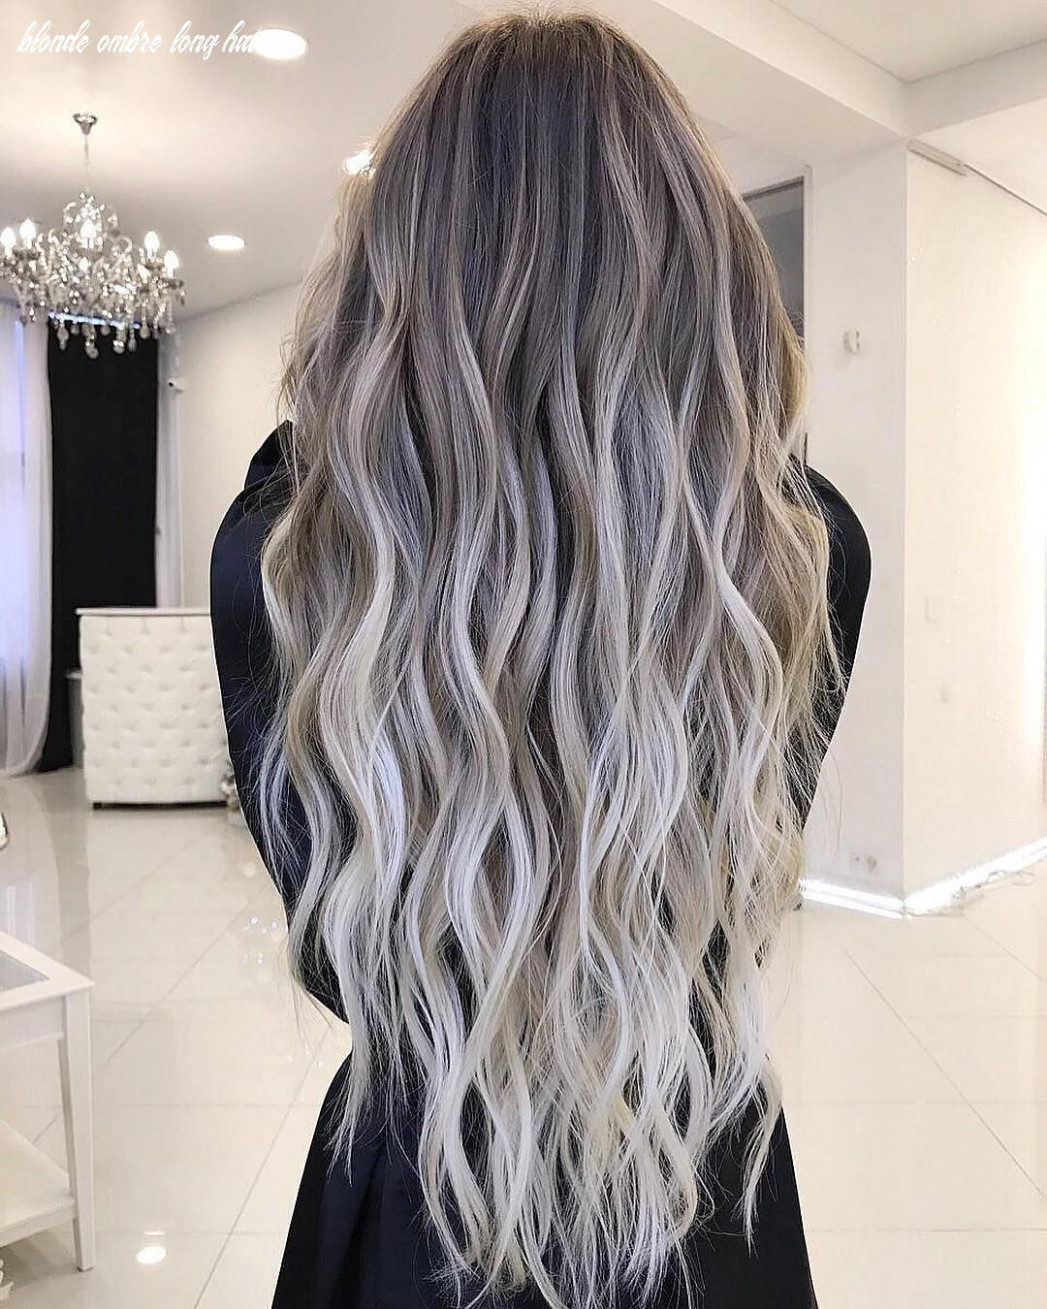 Amazing balayage ombre long hairstyles 12 | frisuren, frisuren